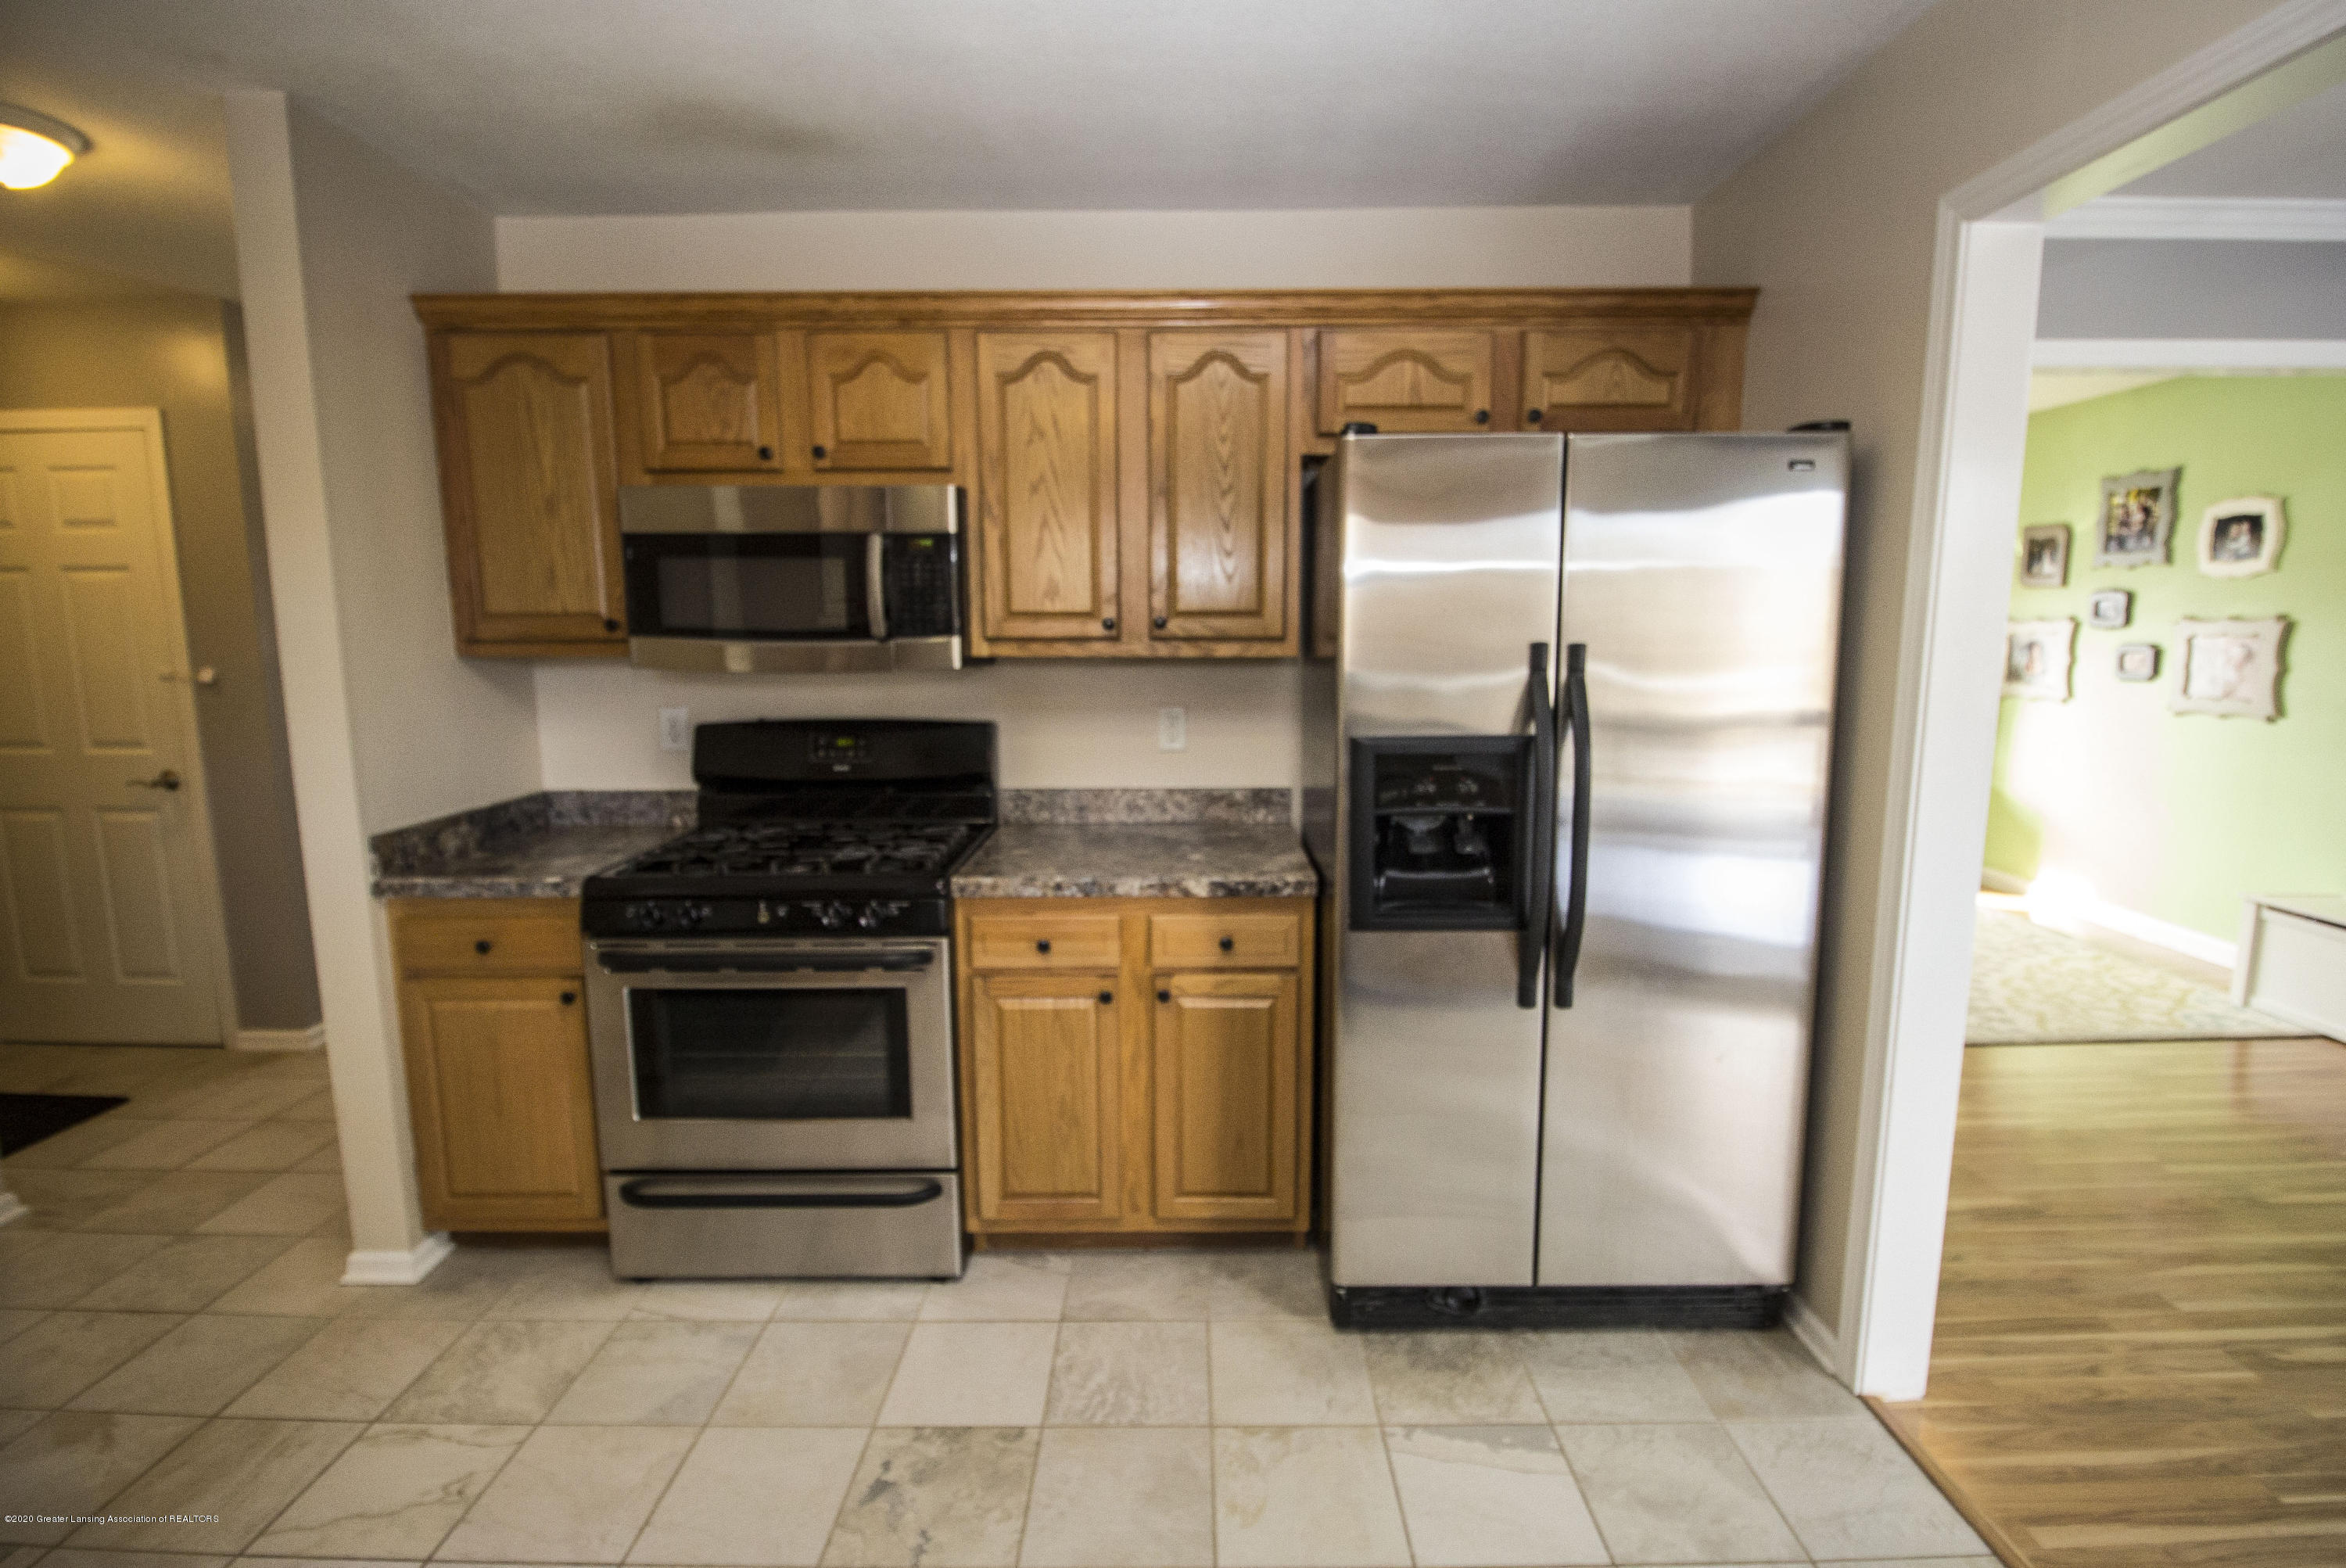 5498 Caplina Dr - Kitchen 4 - 13